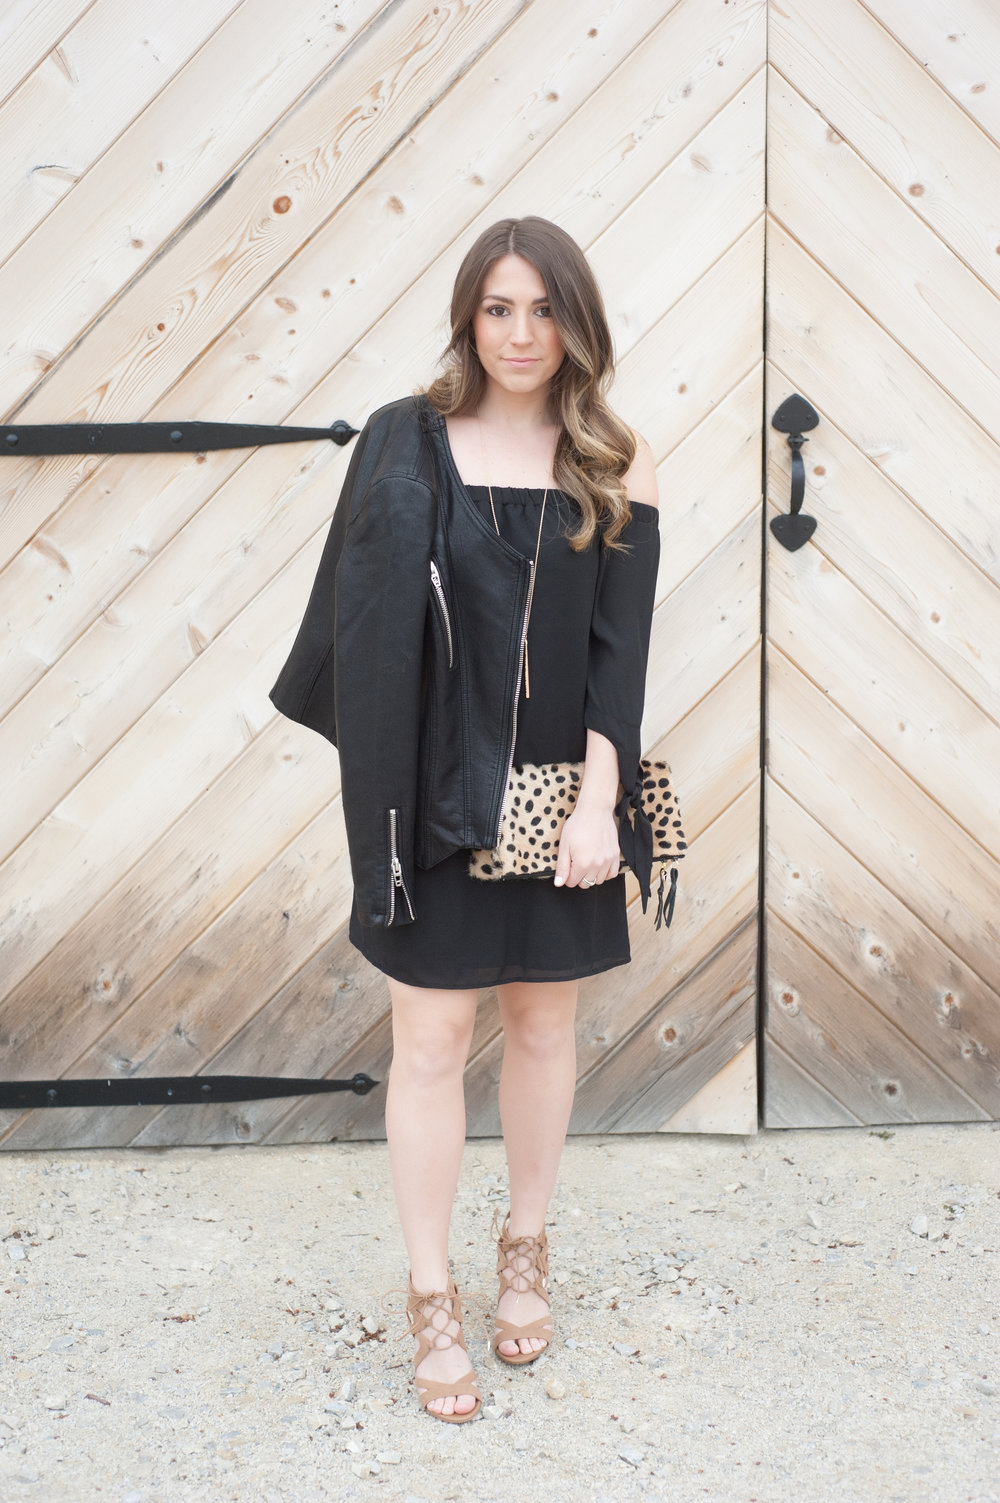 off the shoulder black dress + leather moto jacket / spring transition outfit